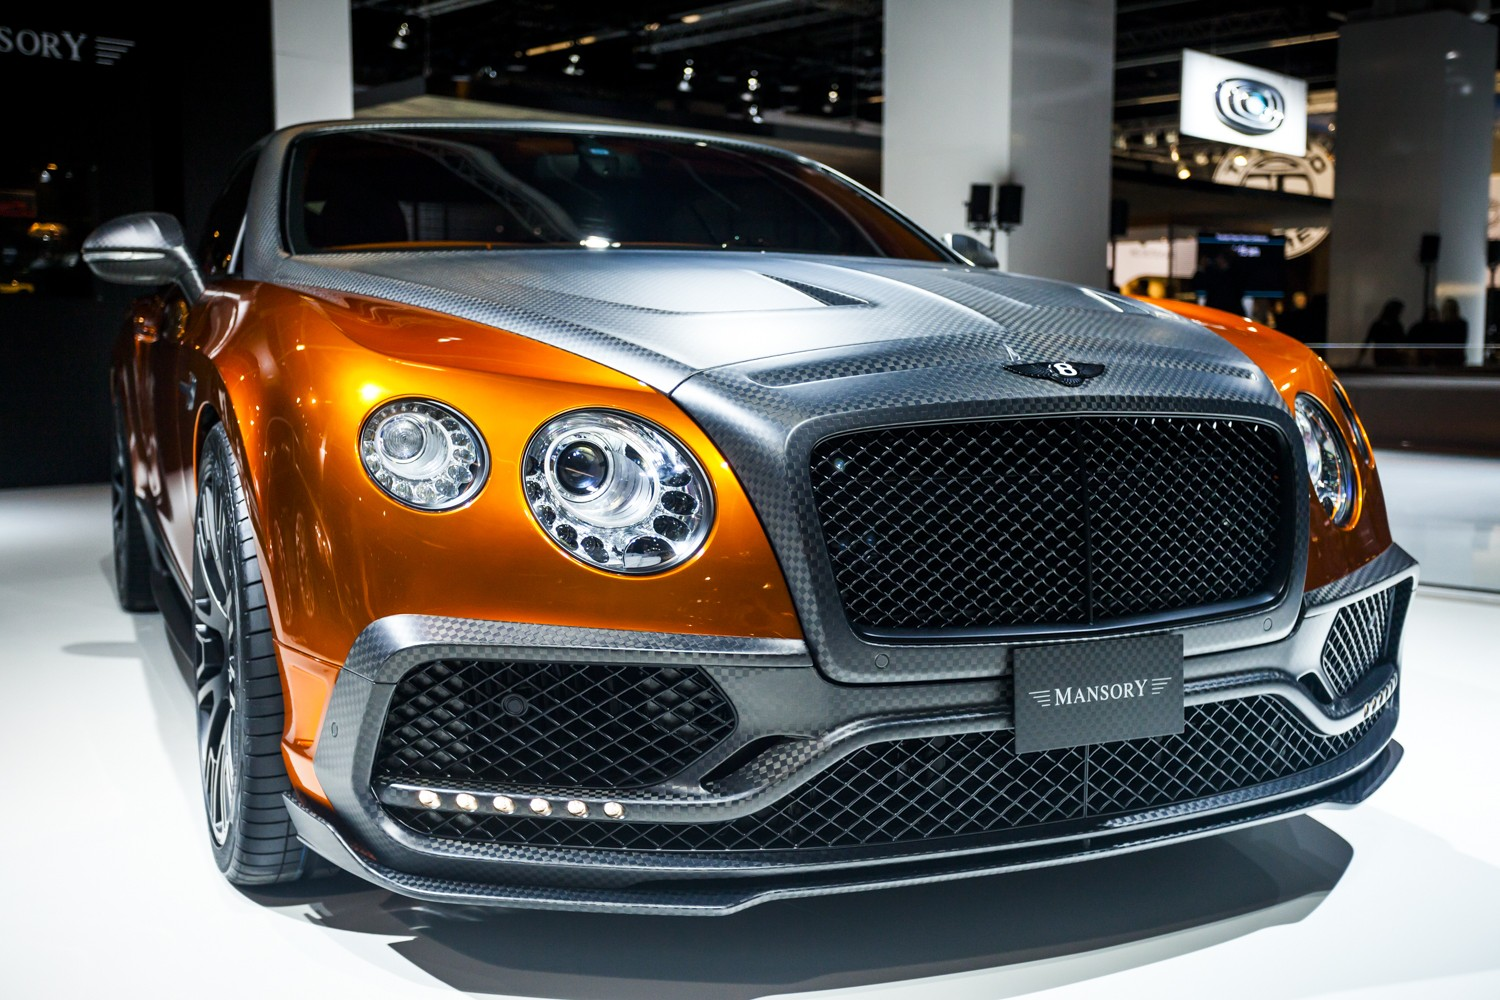 Mansory Continental GTC